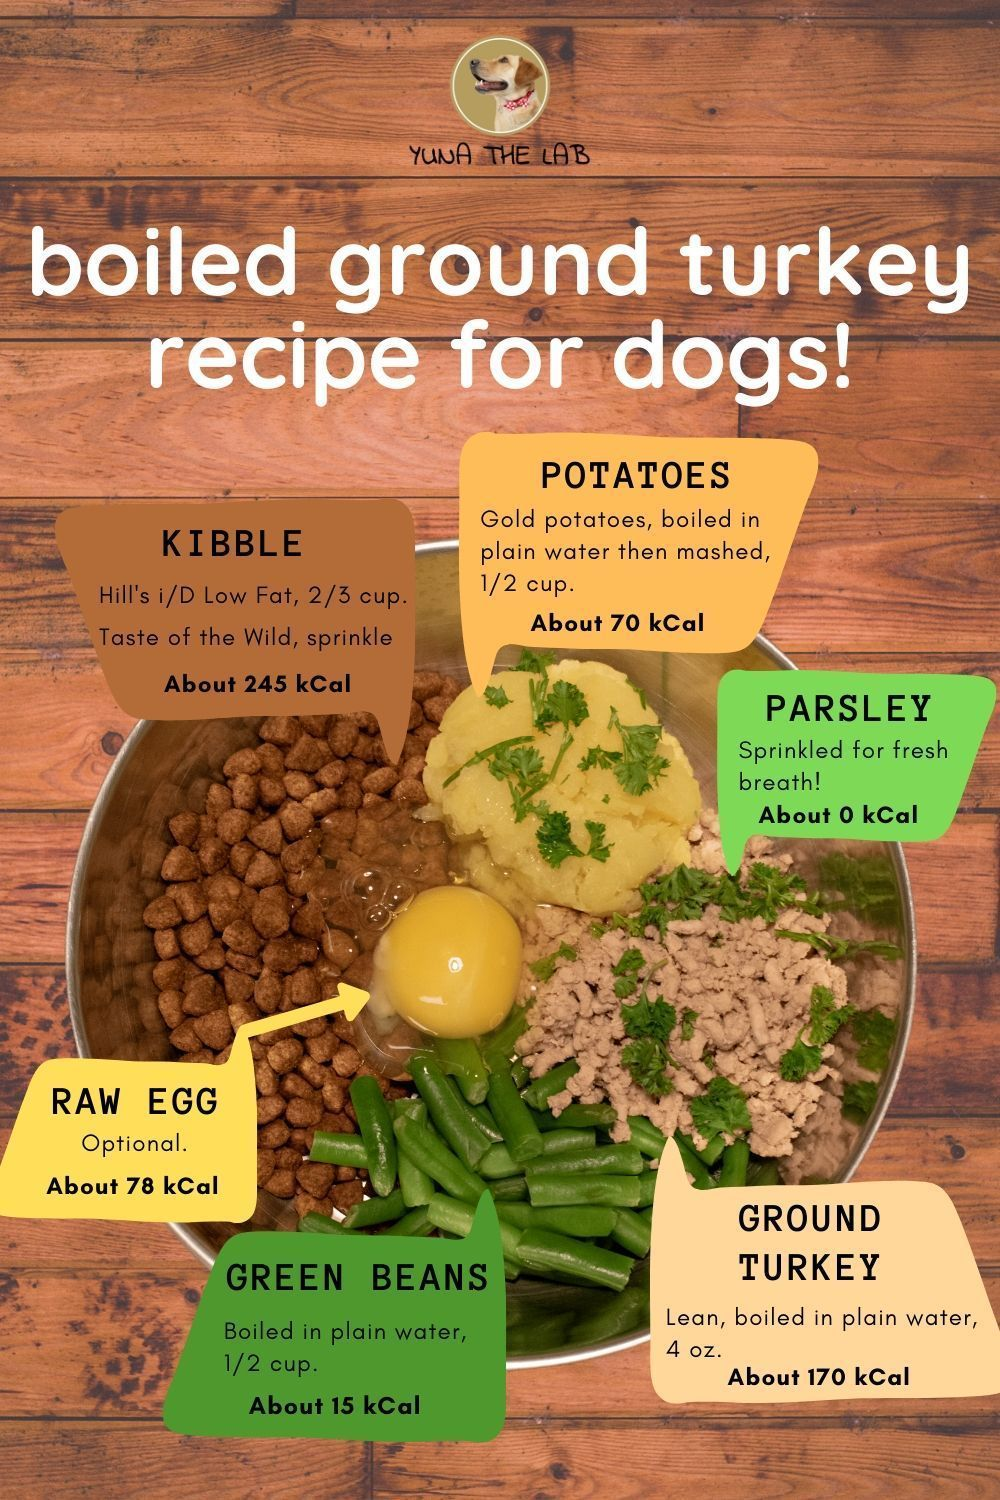 Boiled Ground Turkey For Dogs Recipe (Thanksgiving